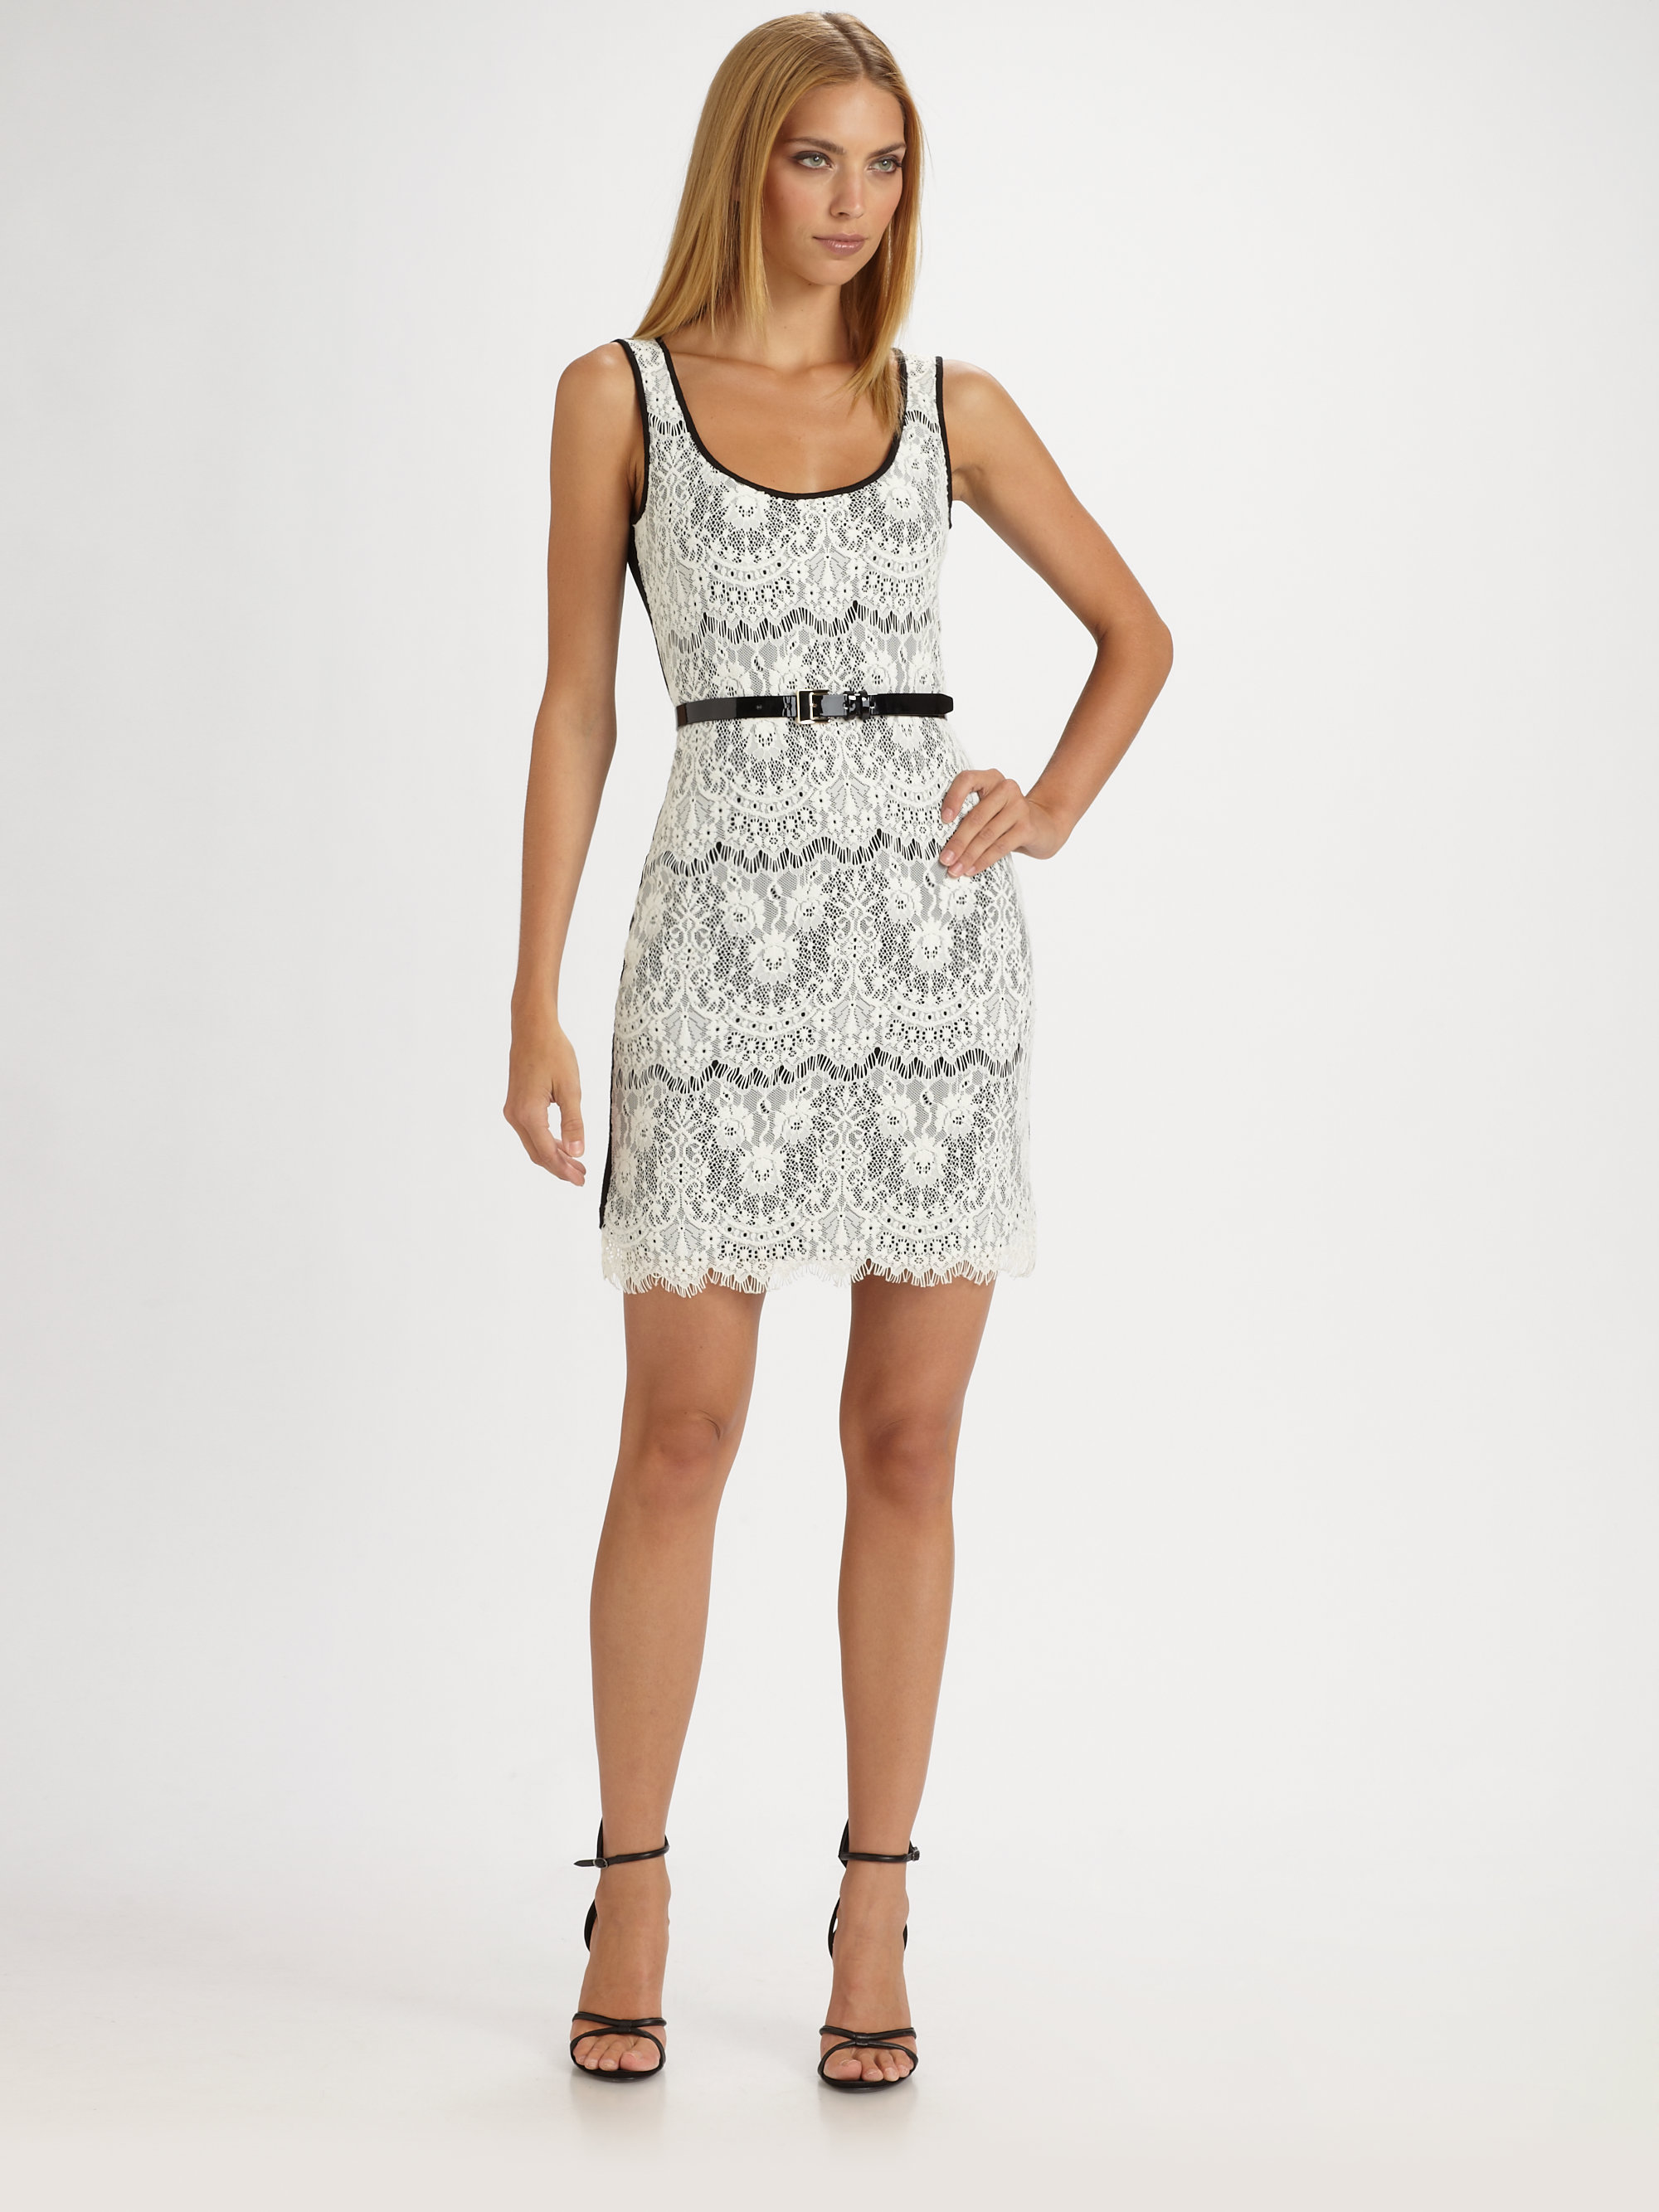 Royal underground Lace Tank Dress in White | Lyst